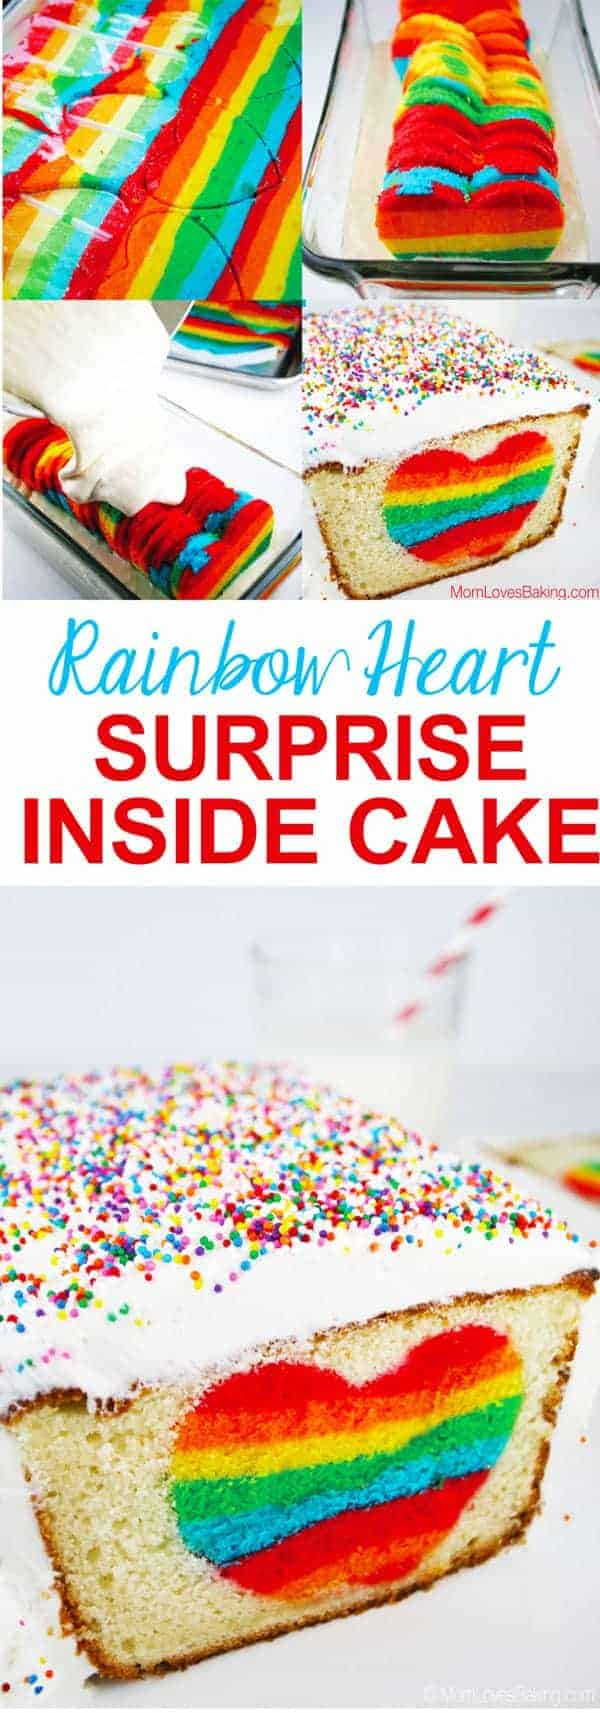 Rainbow Heart Surprise Inside Cake